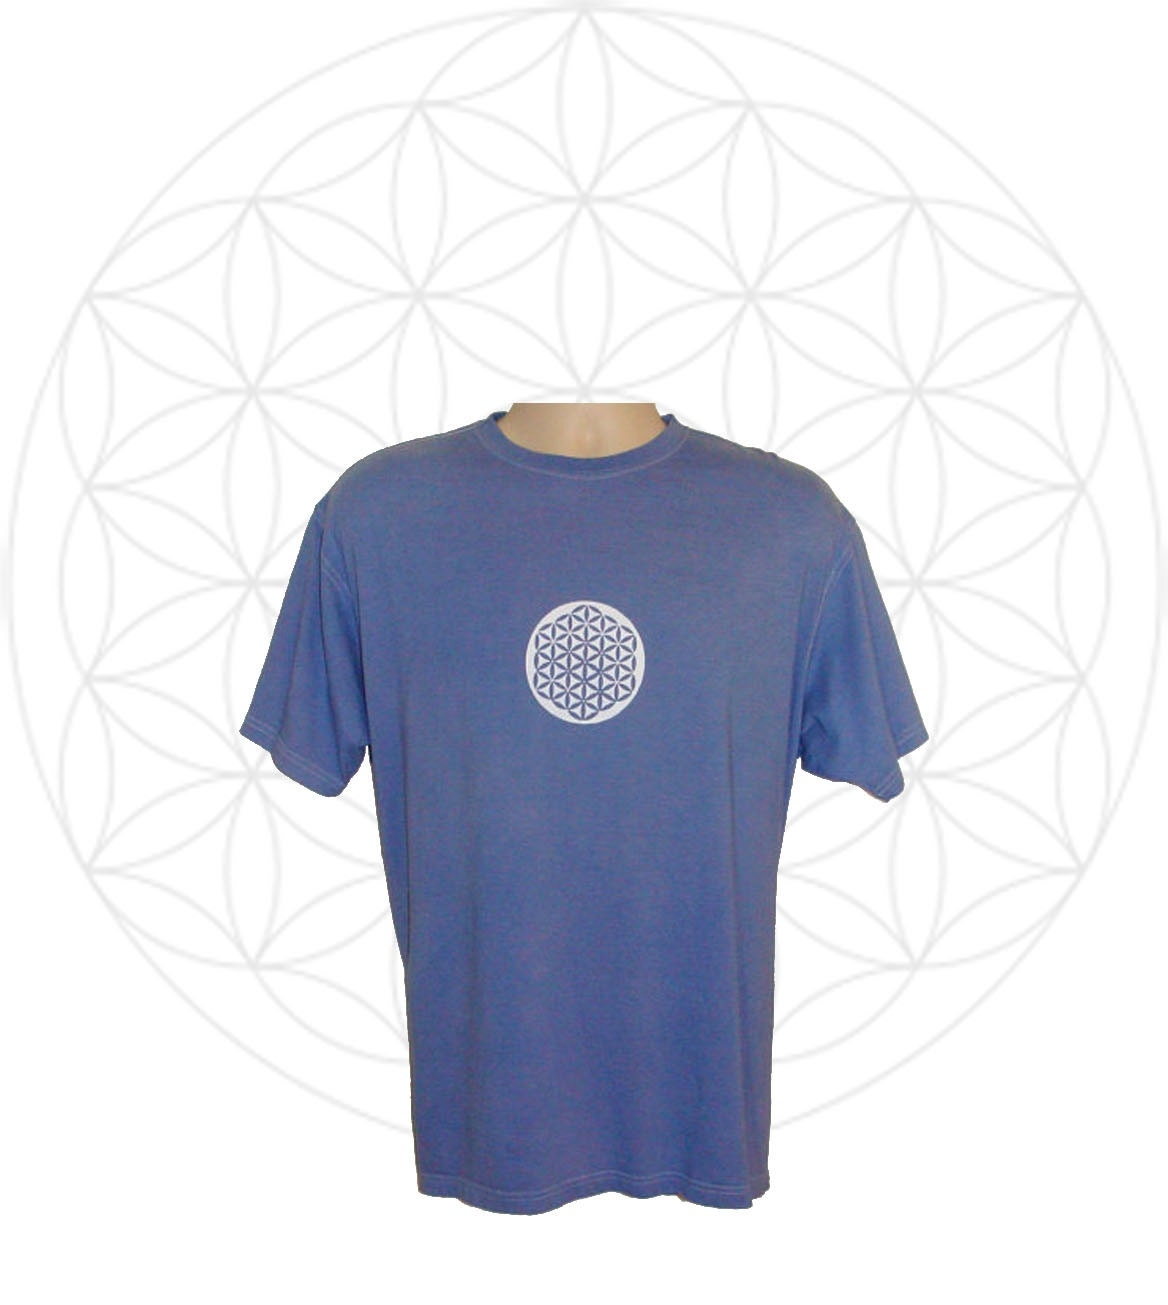 Organic Shirts Mens Organic Cotton T Shirt Hand Dyed With